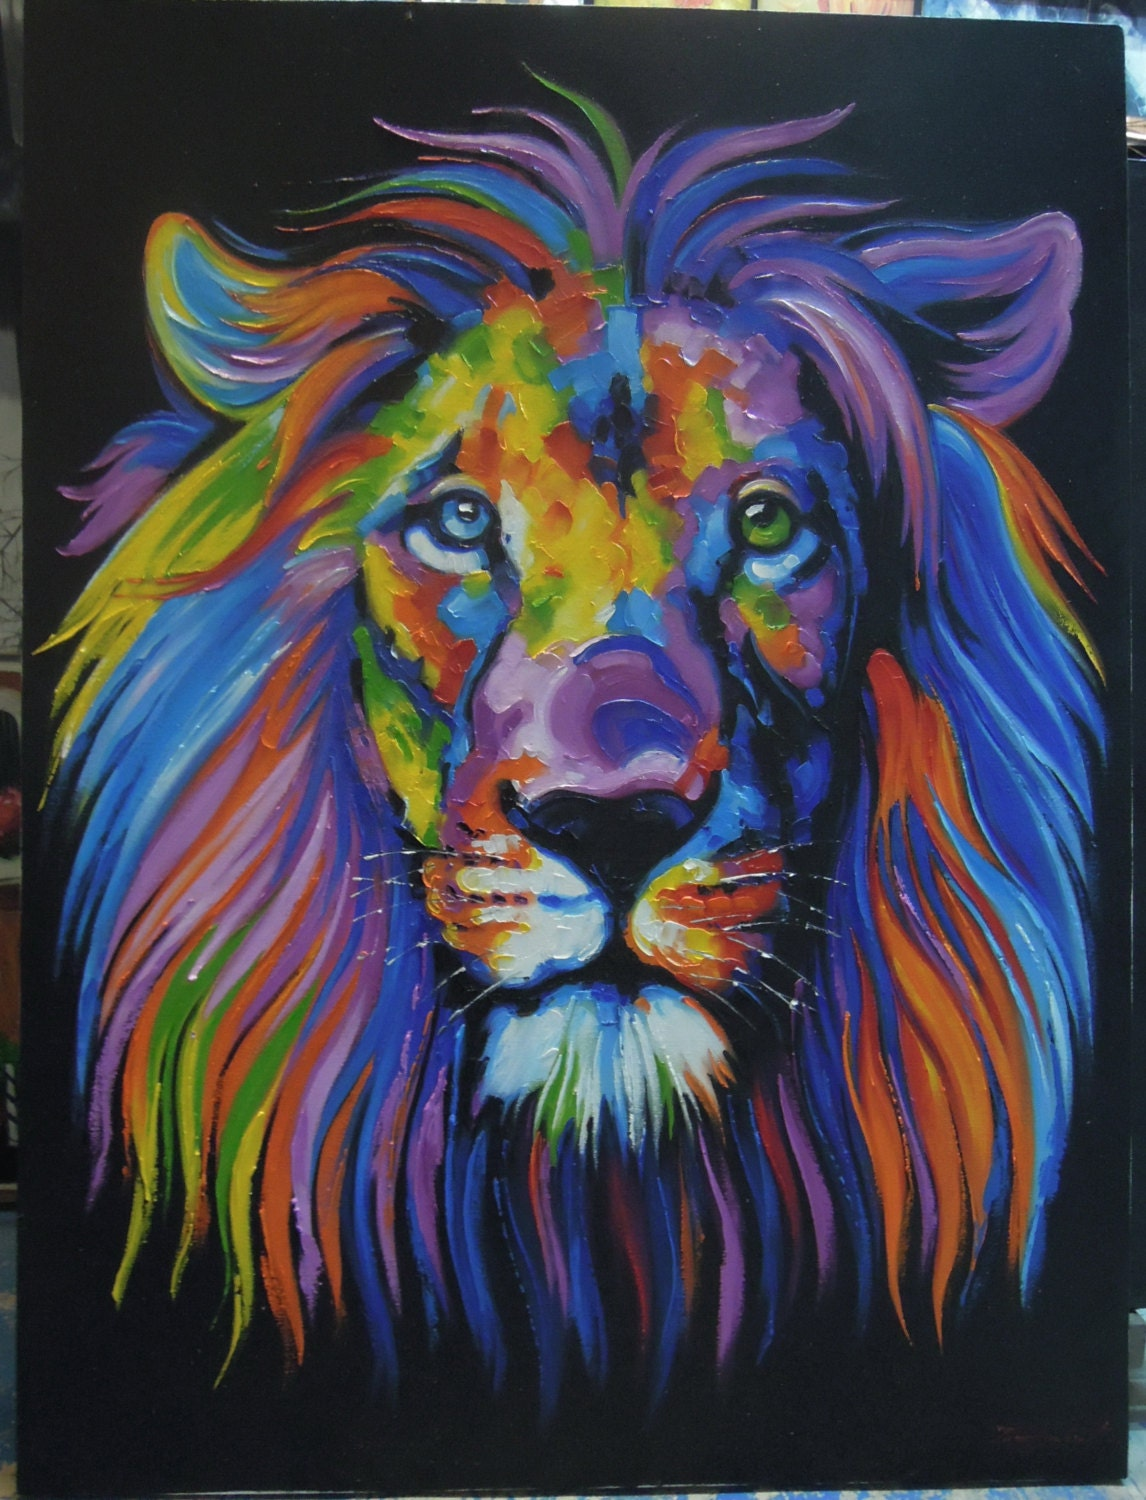 Colorful lion painting - photo#55